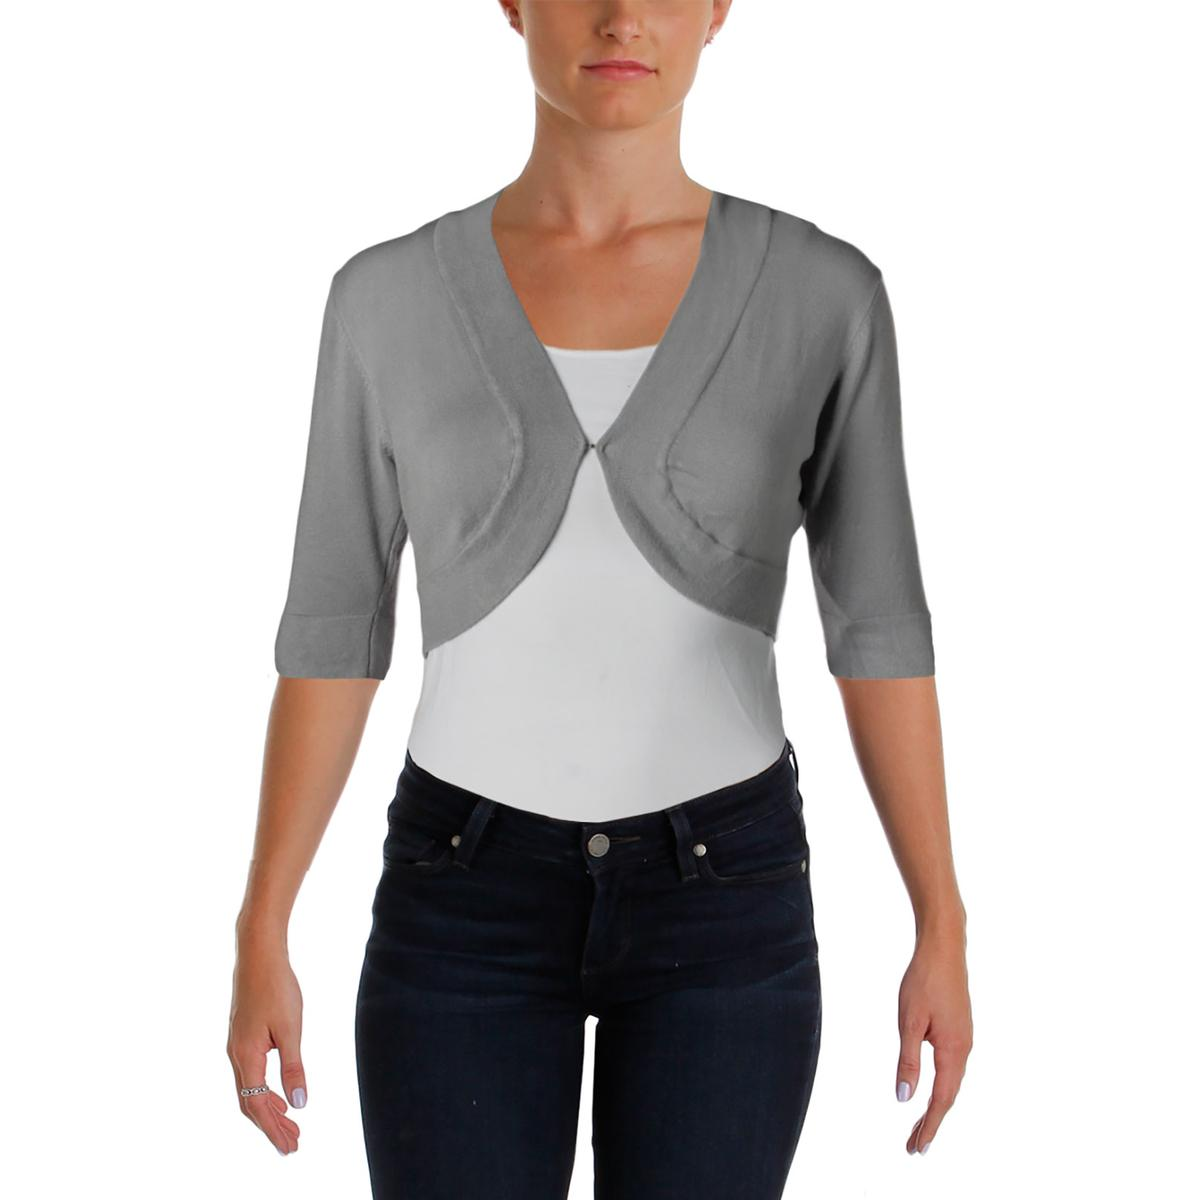 B. Darlin 5791 Womens Knit Cropped Open Front Cardigan Sweater Top ...